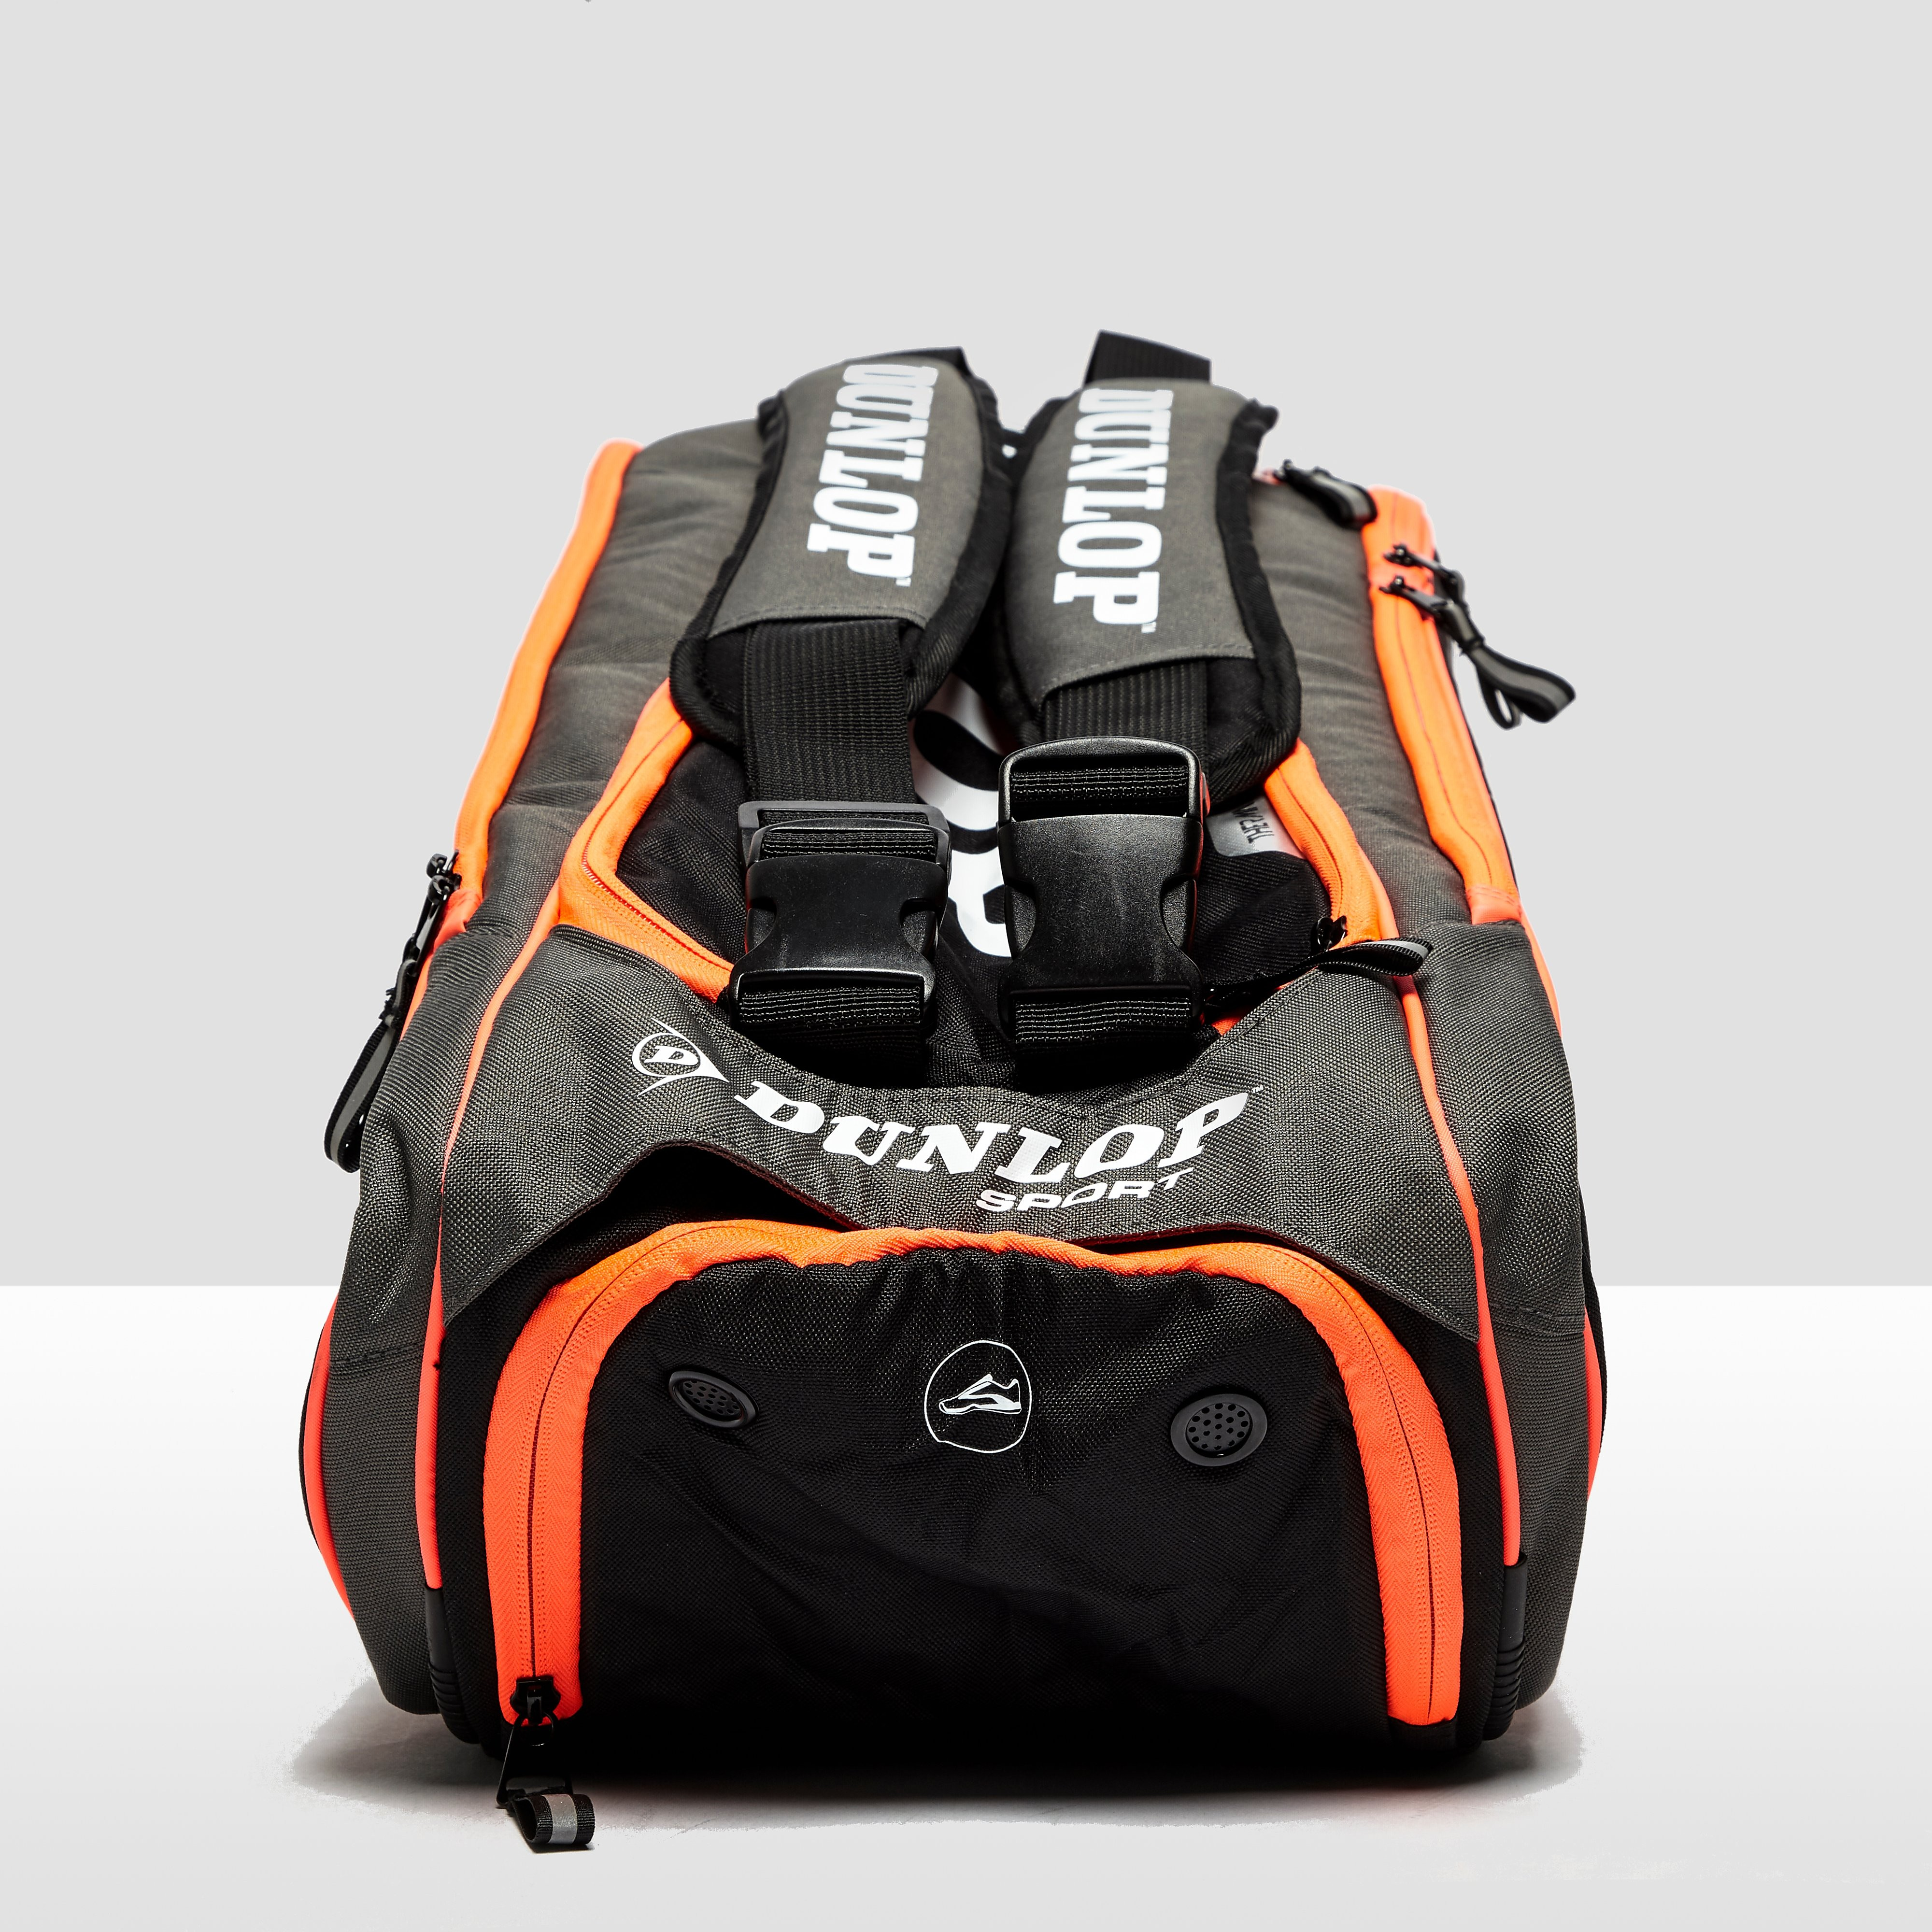 DUNLOP Ali Farag Signature 8 Racket Bag